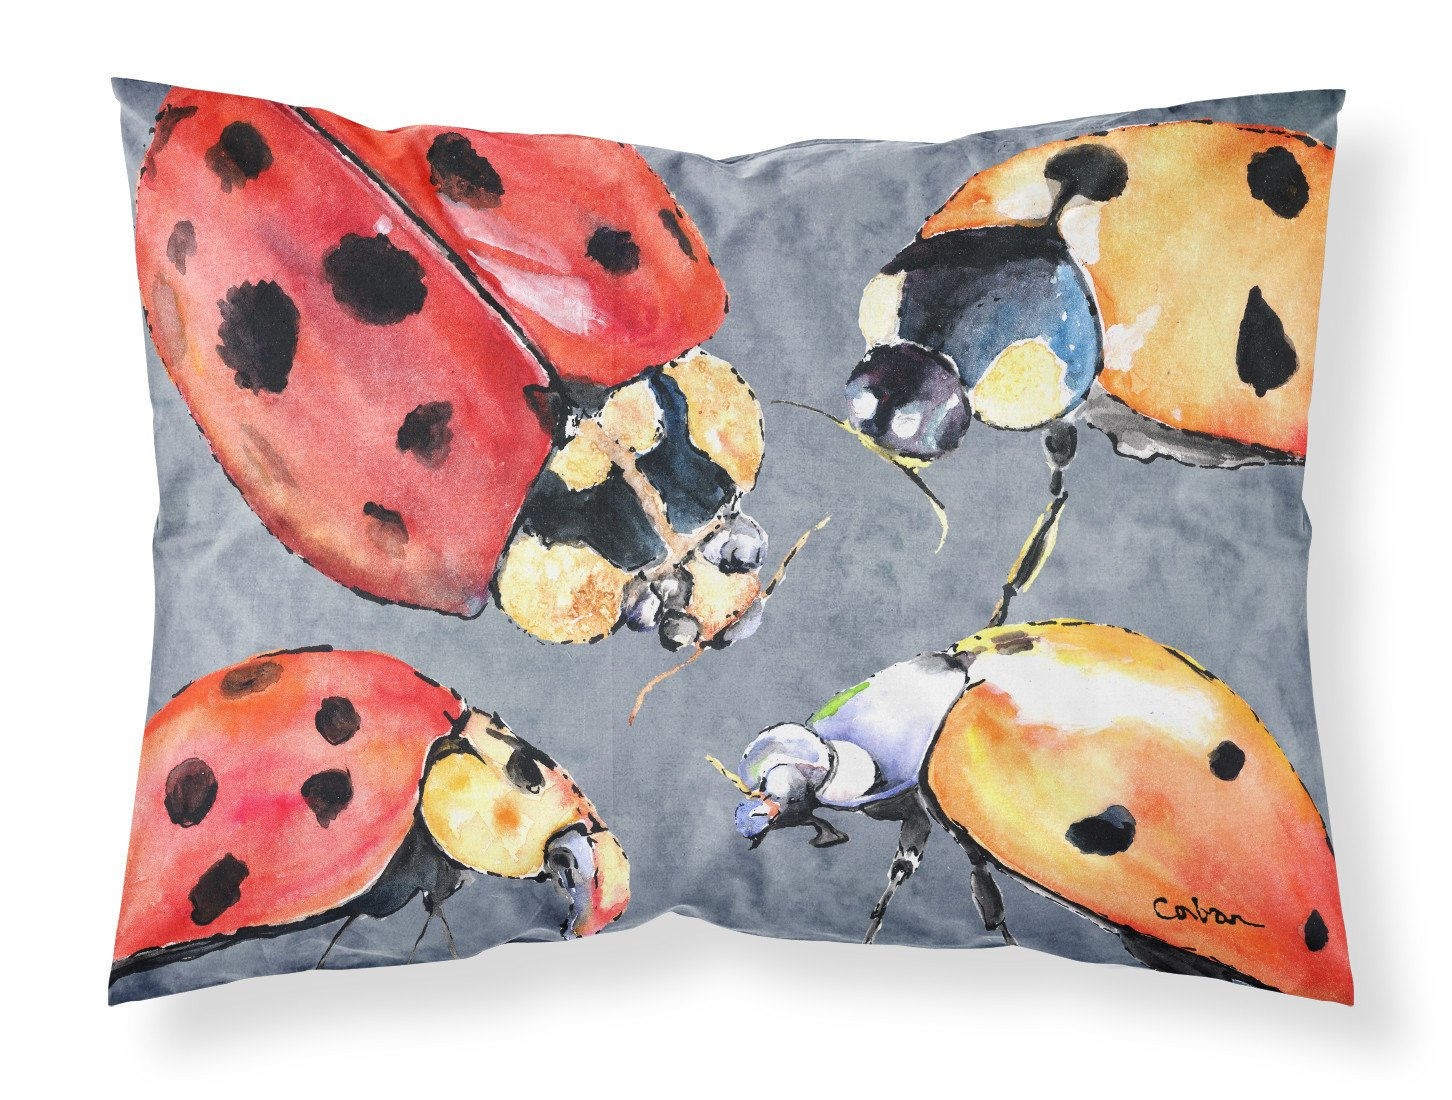 Buy this Lady Bug Multiple Moisture wicking Fabric standard pillowcase